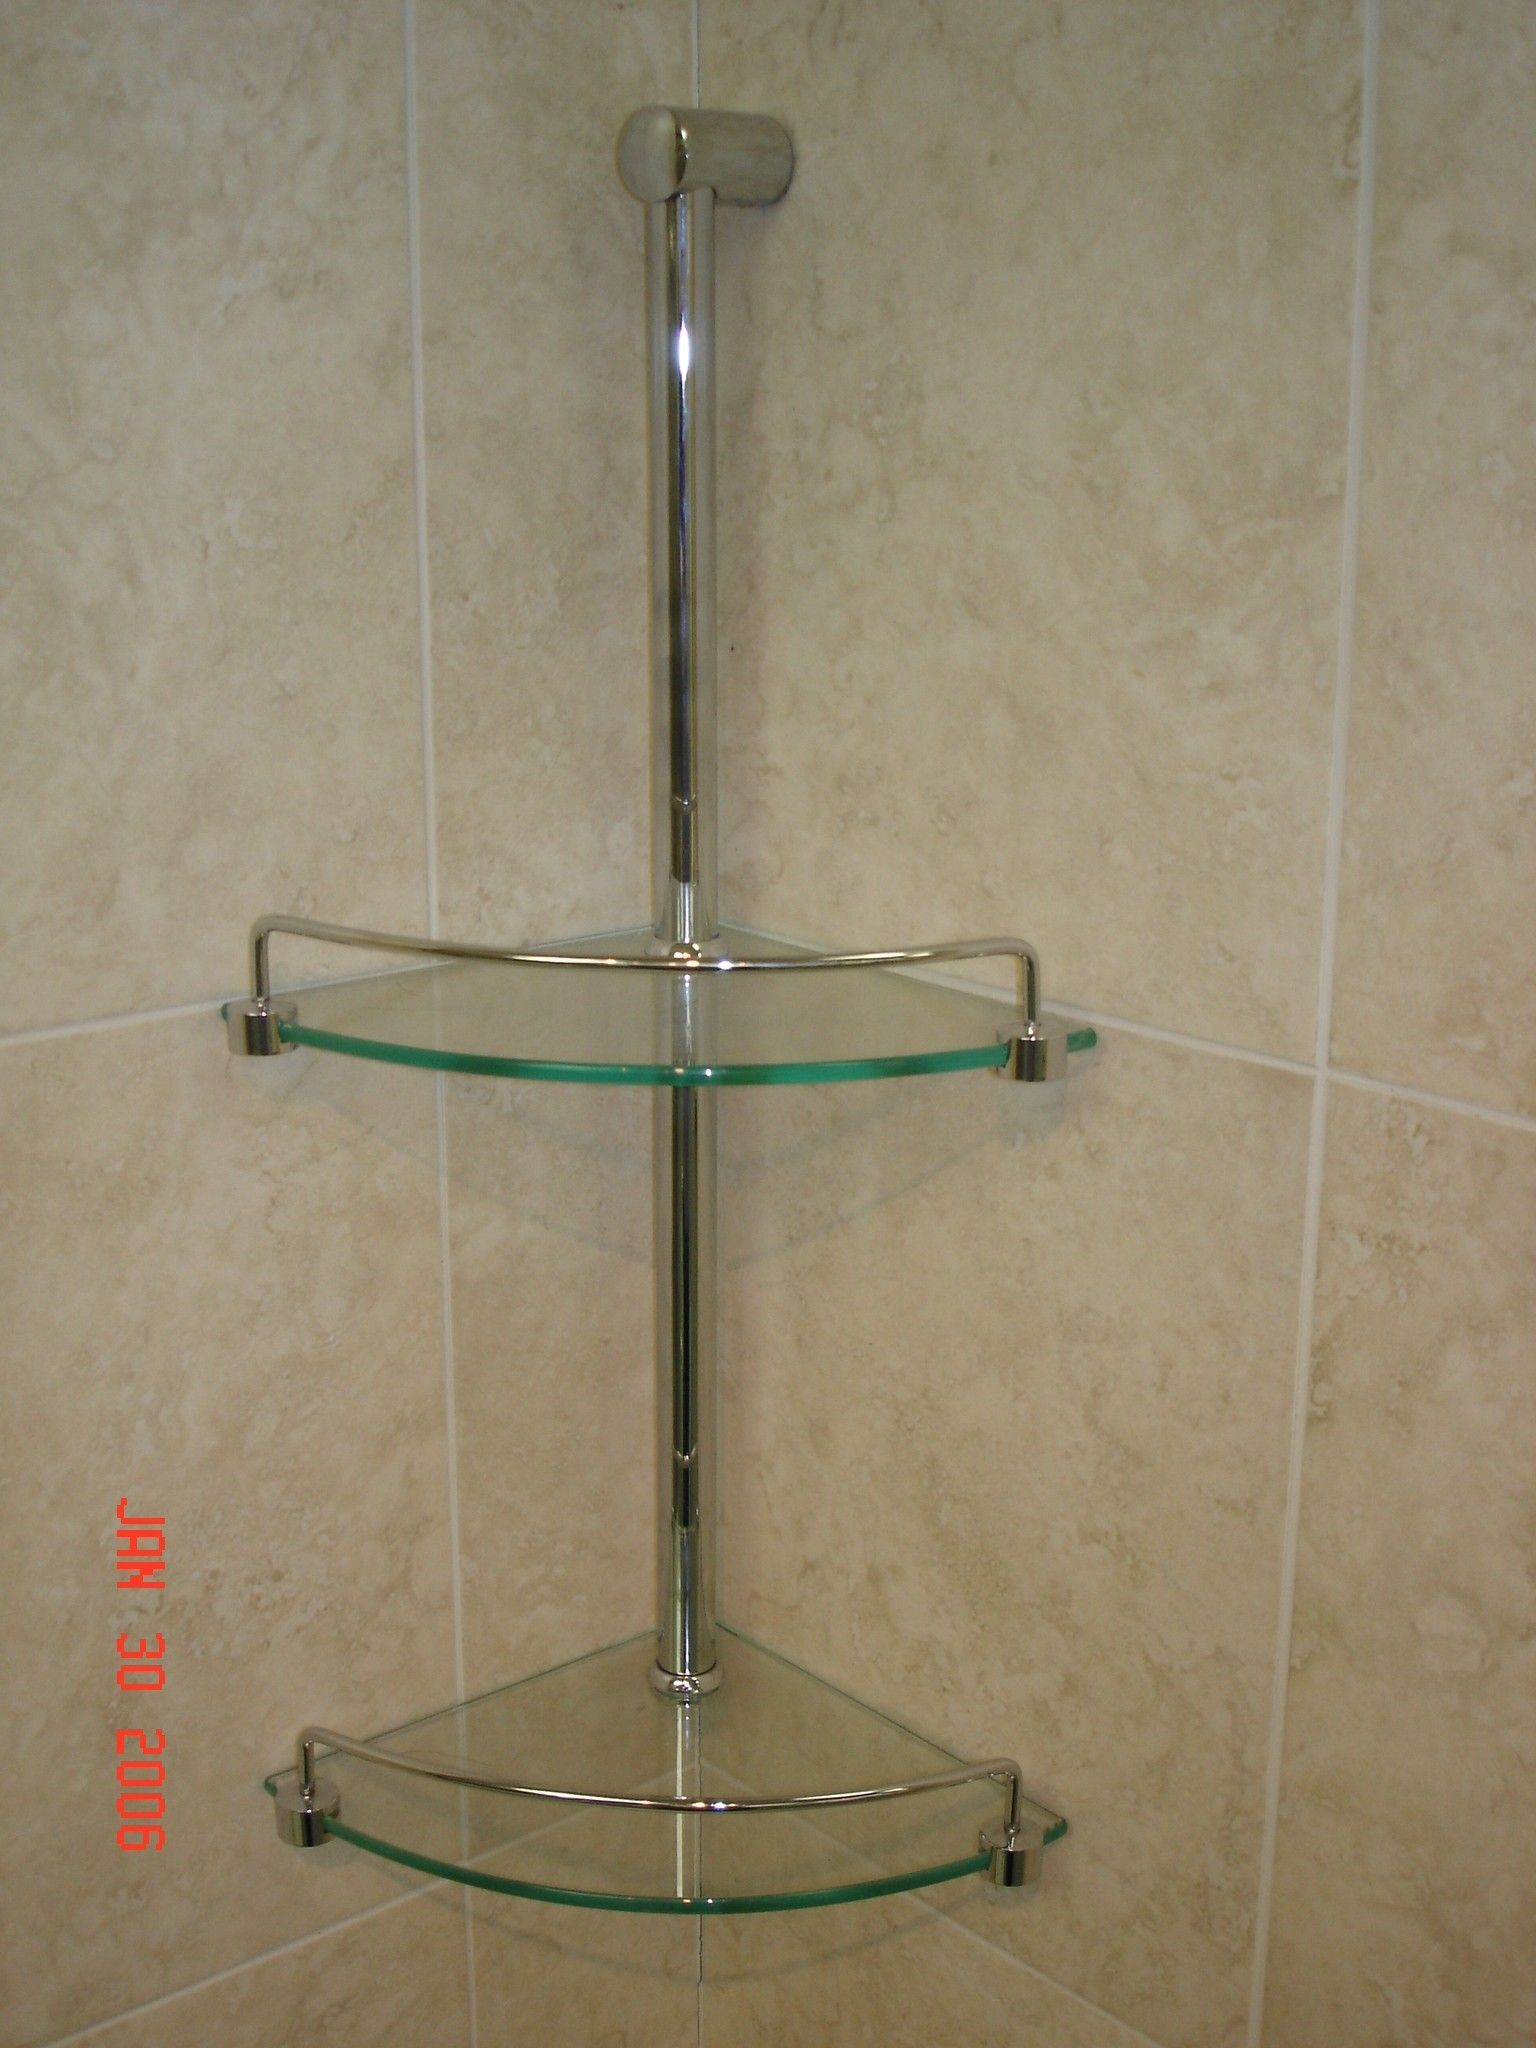 Shower Shelves Google Search With Images Glass Shower Shelves Shower Shelves Shower Doors